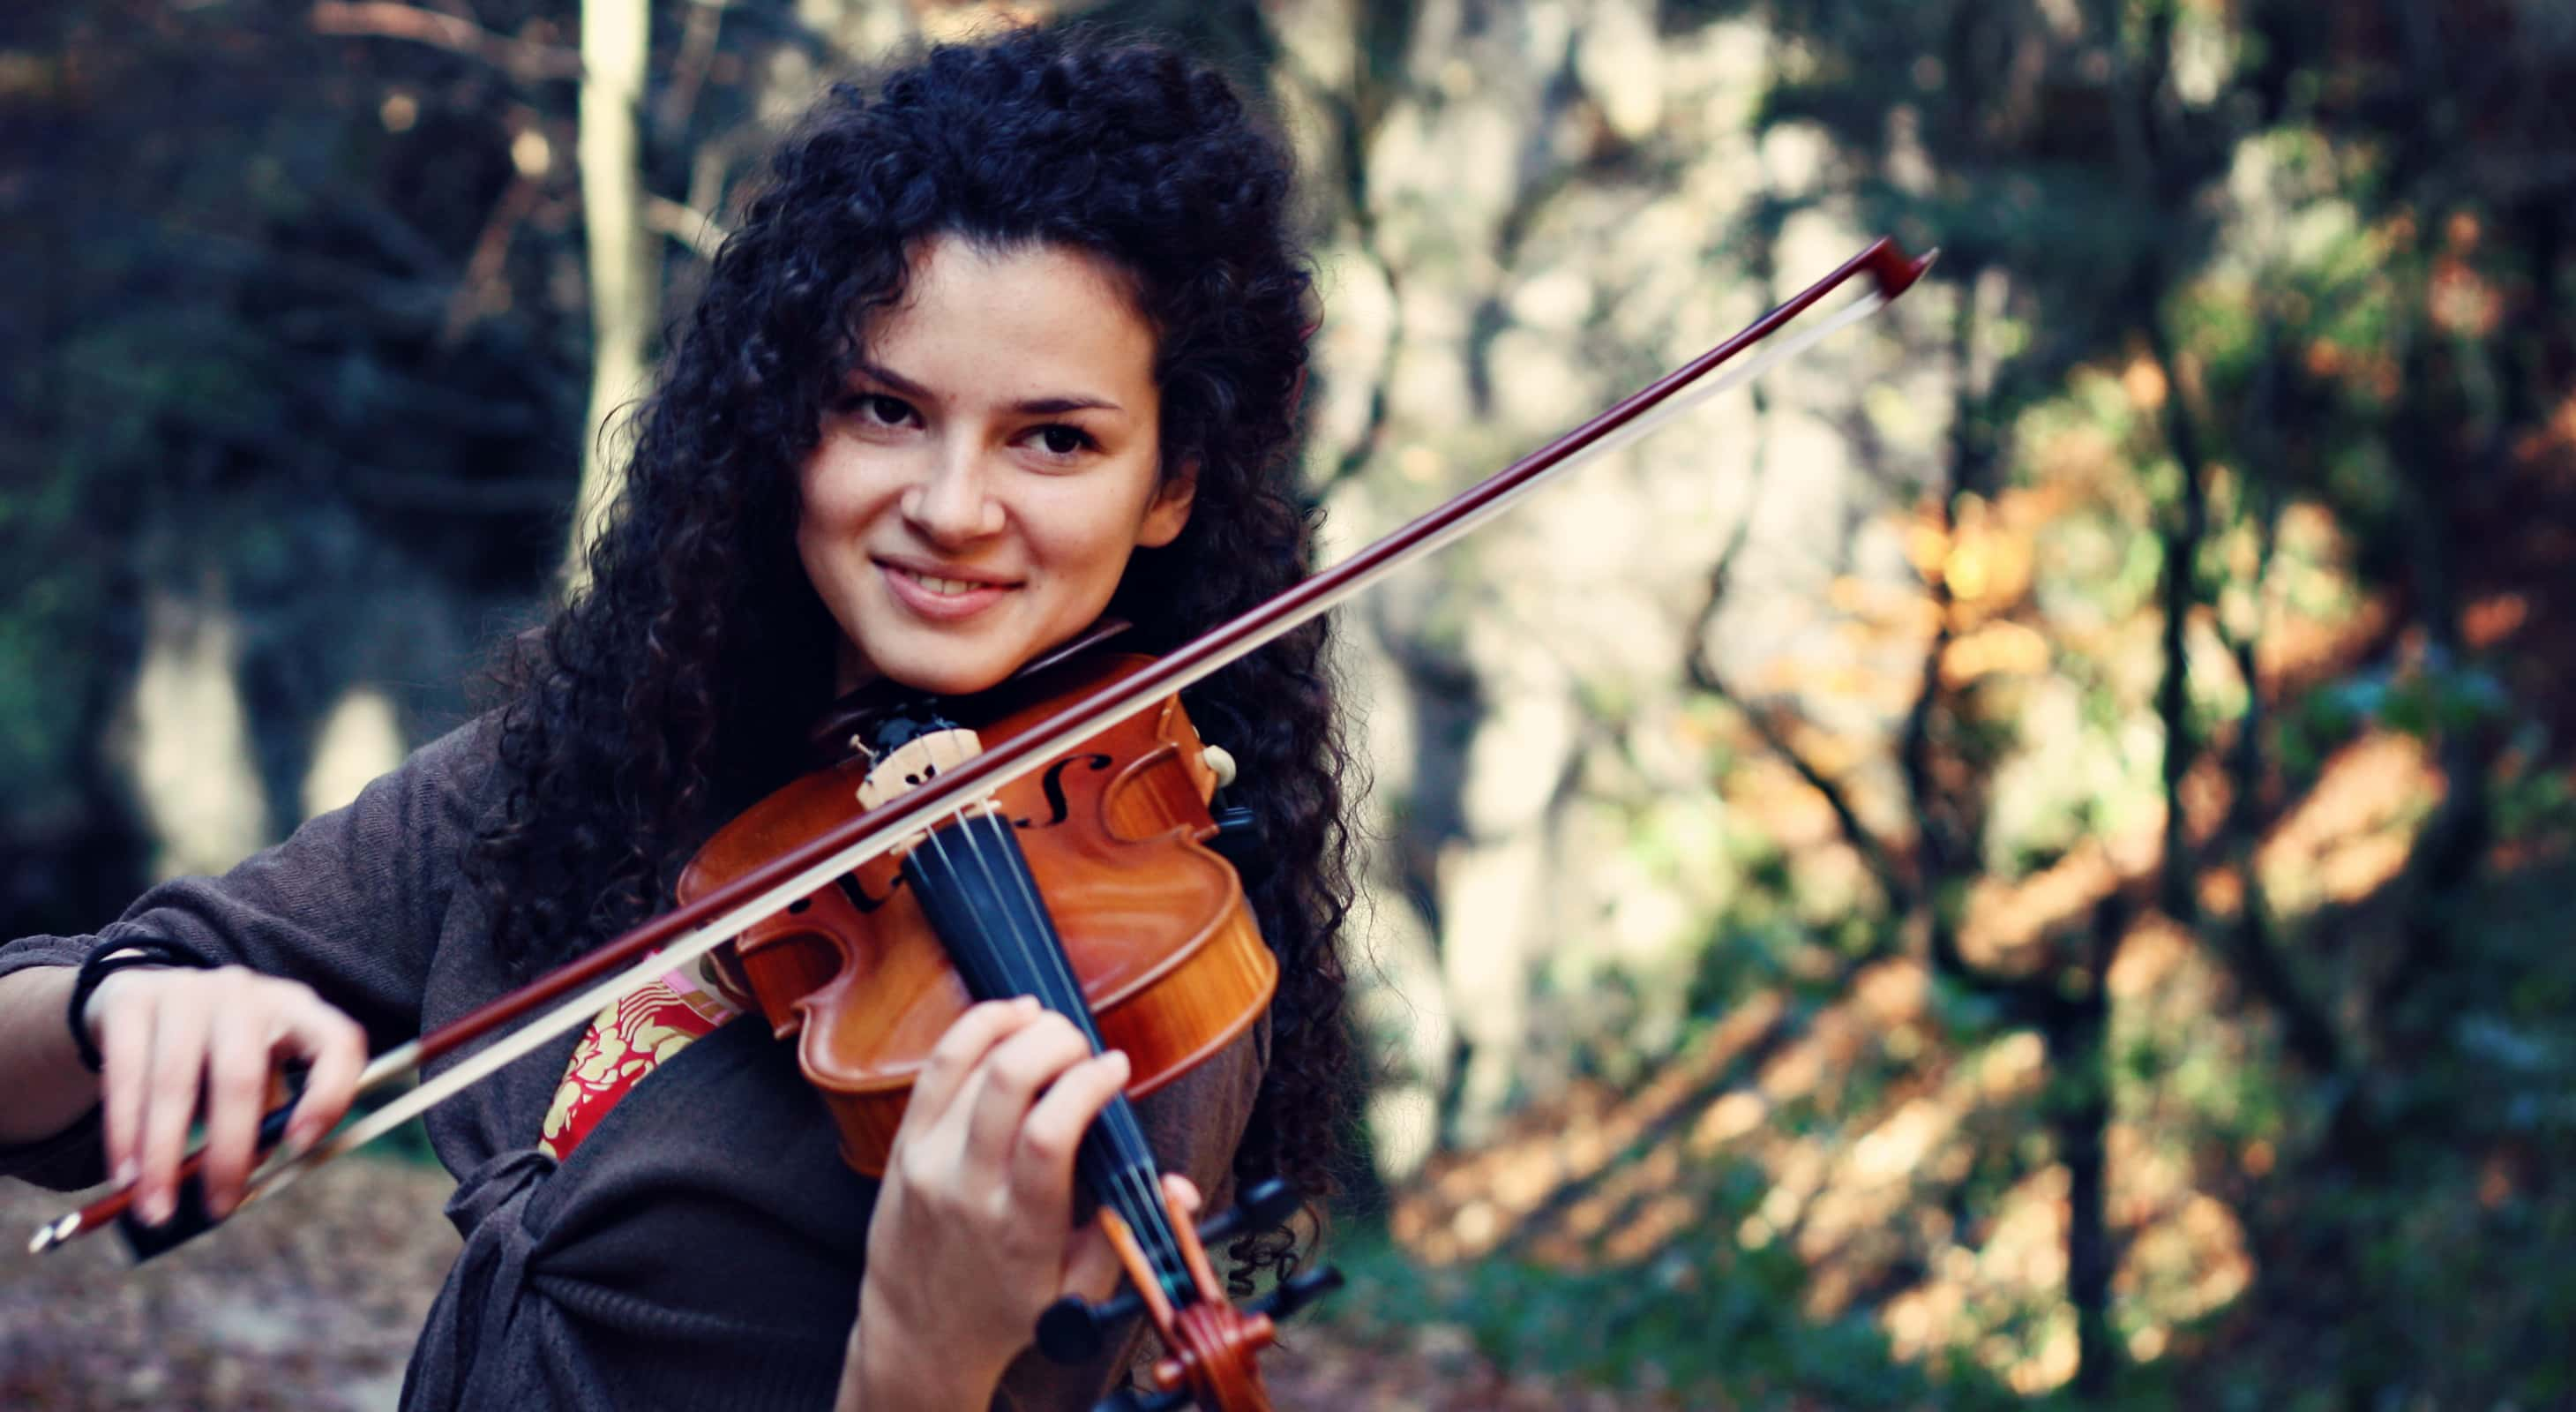 Woman playing violin at outdoor event